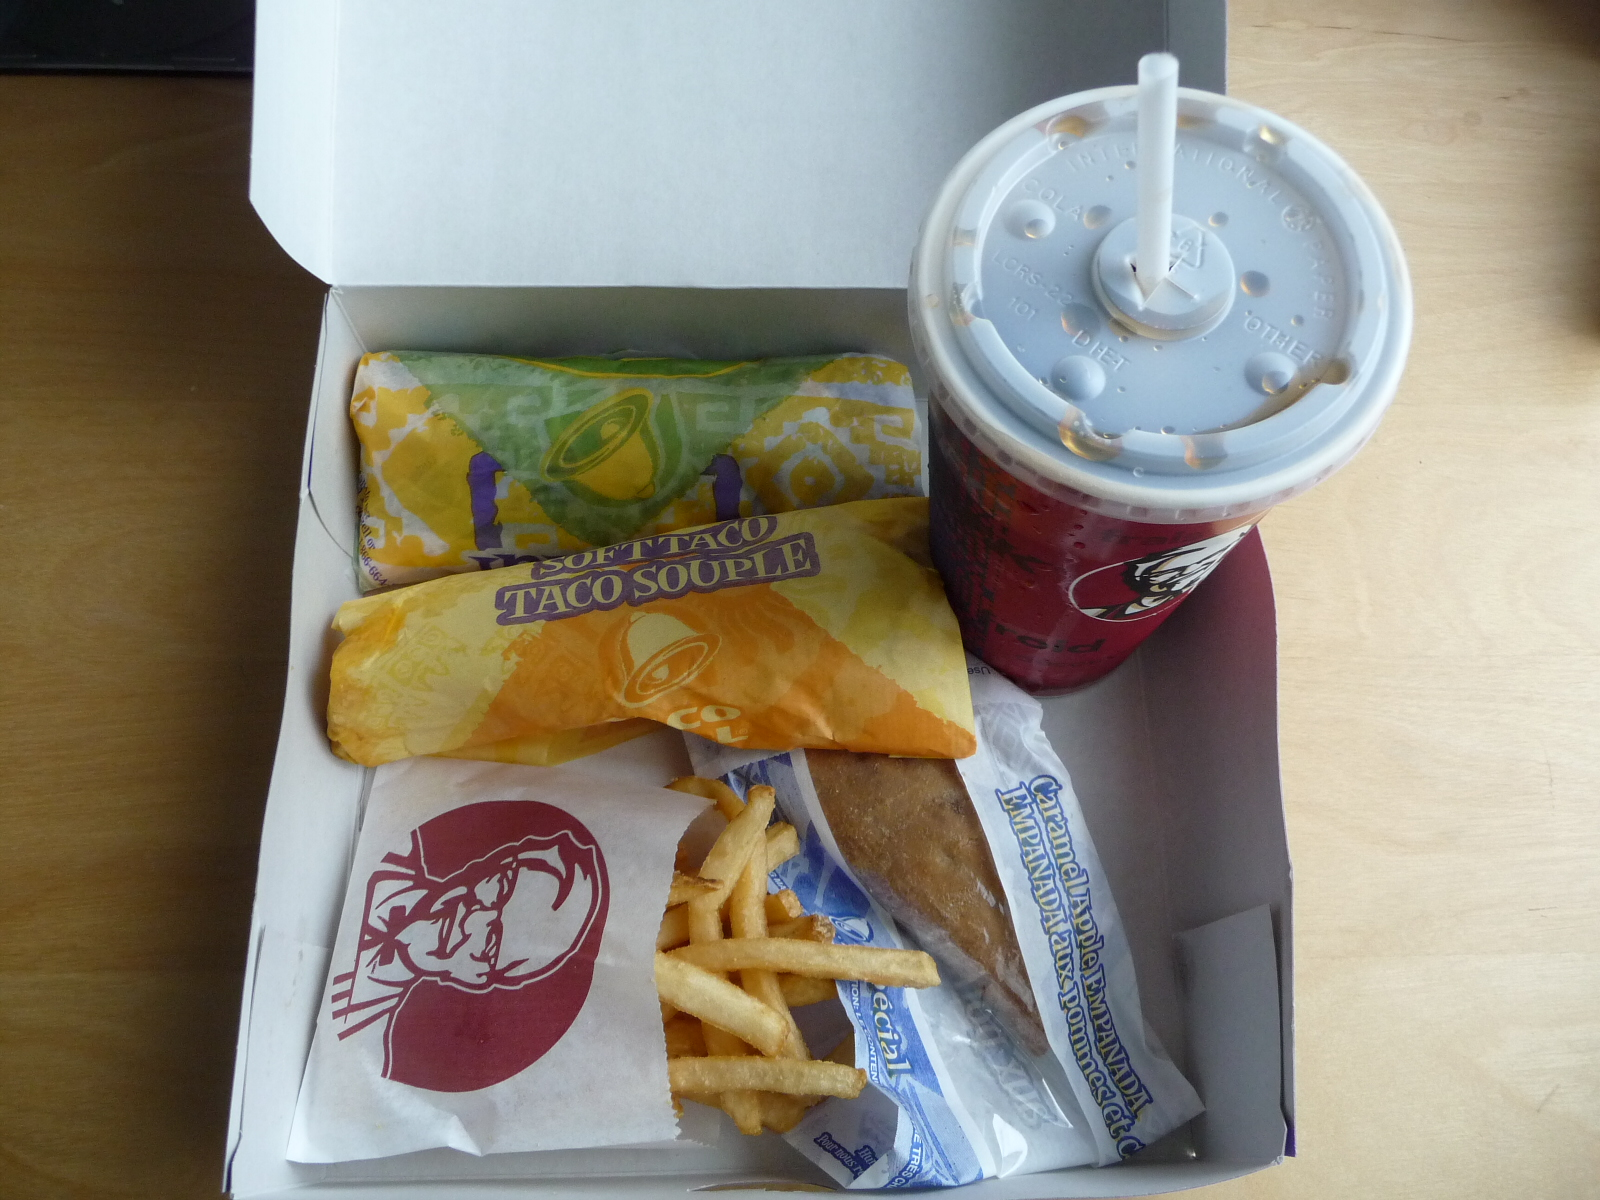 New 5 Dollar Box For Taco Bell